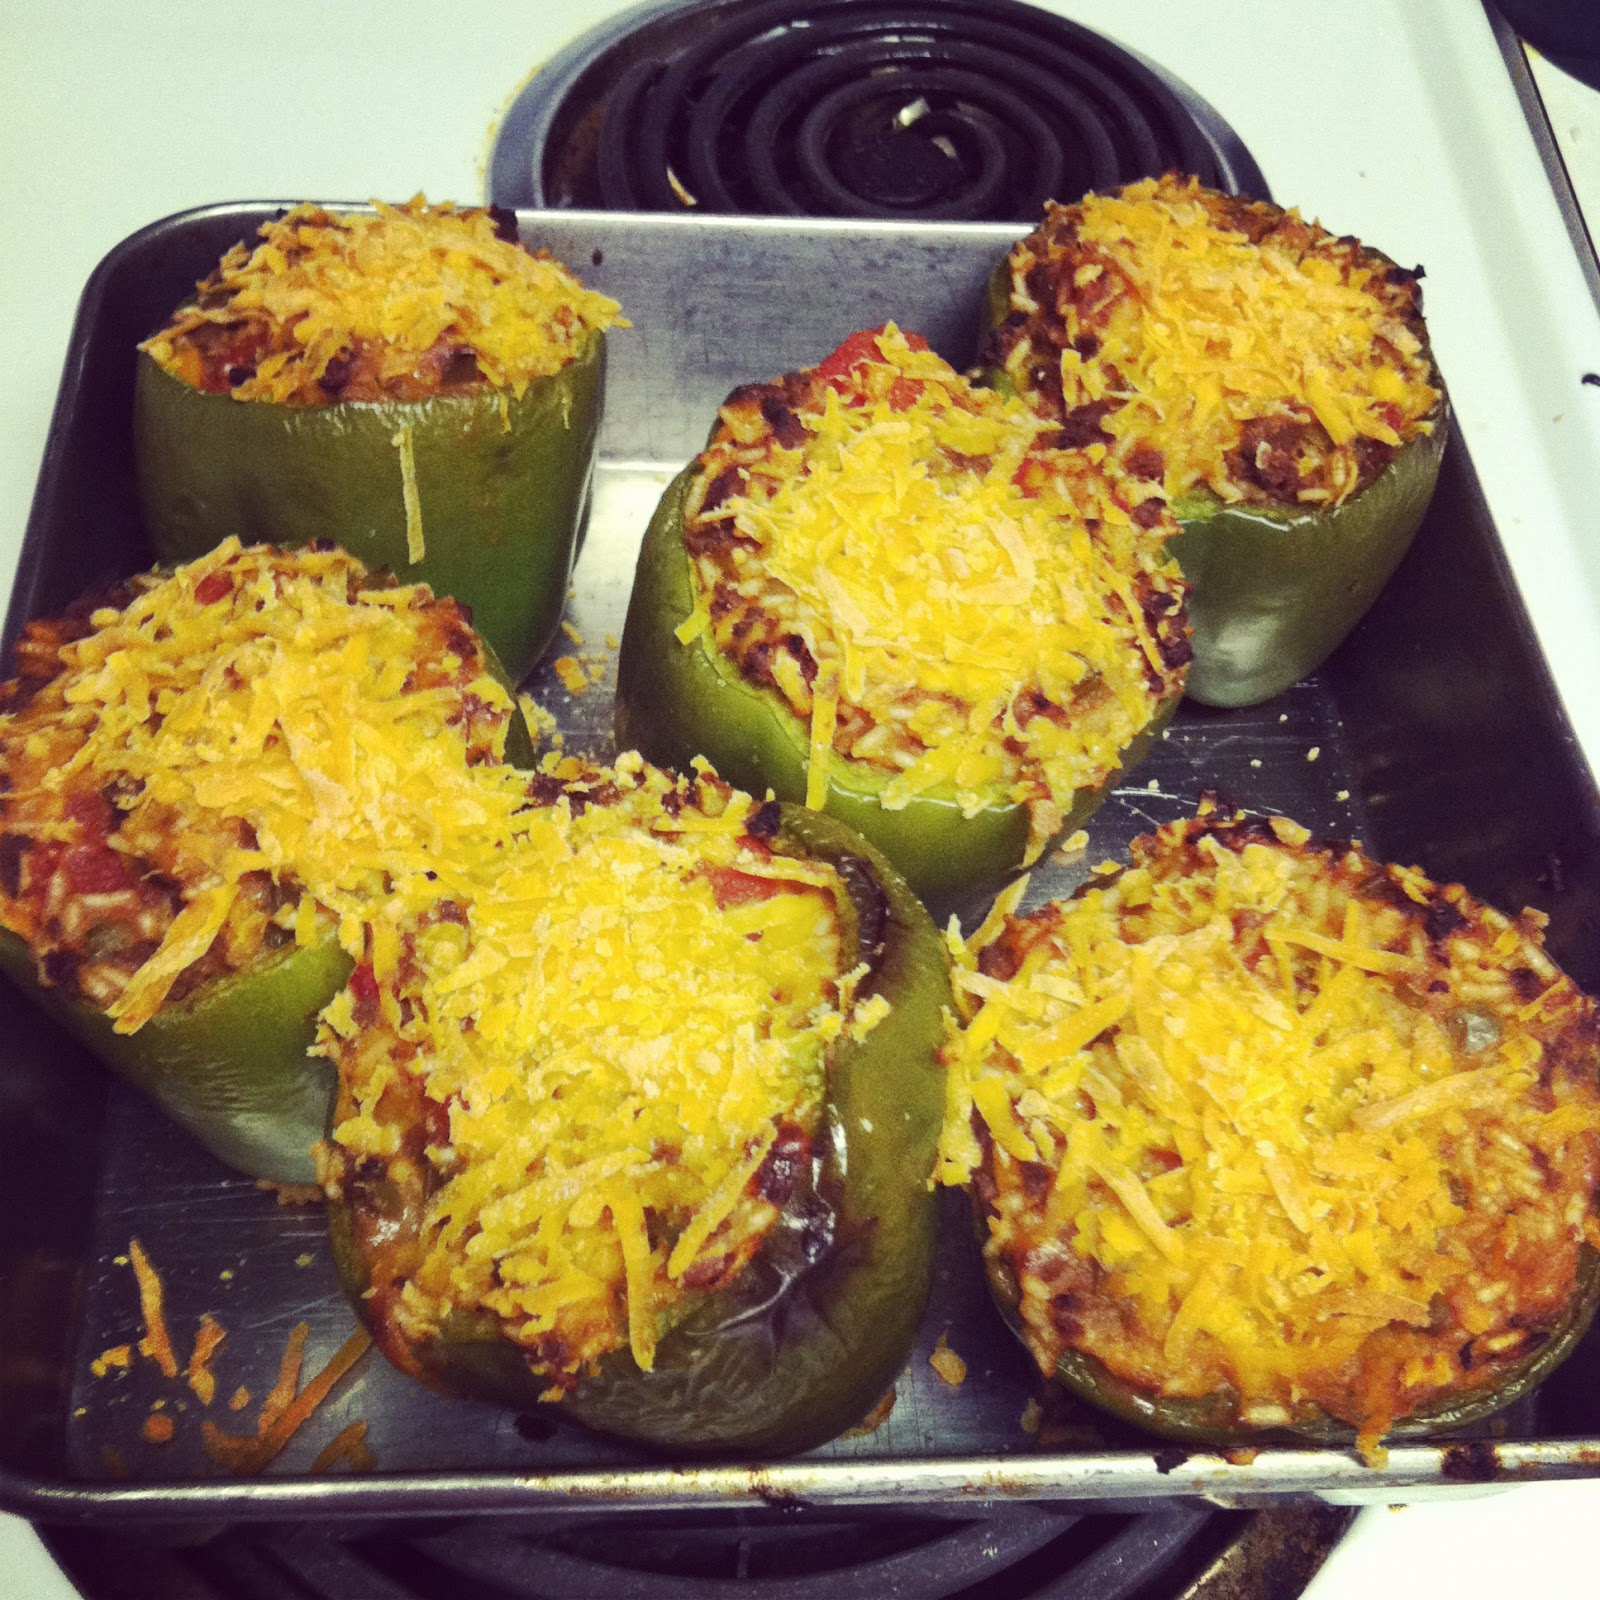 stuffed green peppers by david huston 6 large green peppers